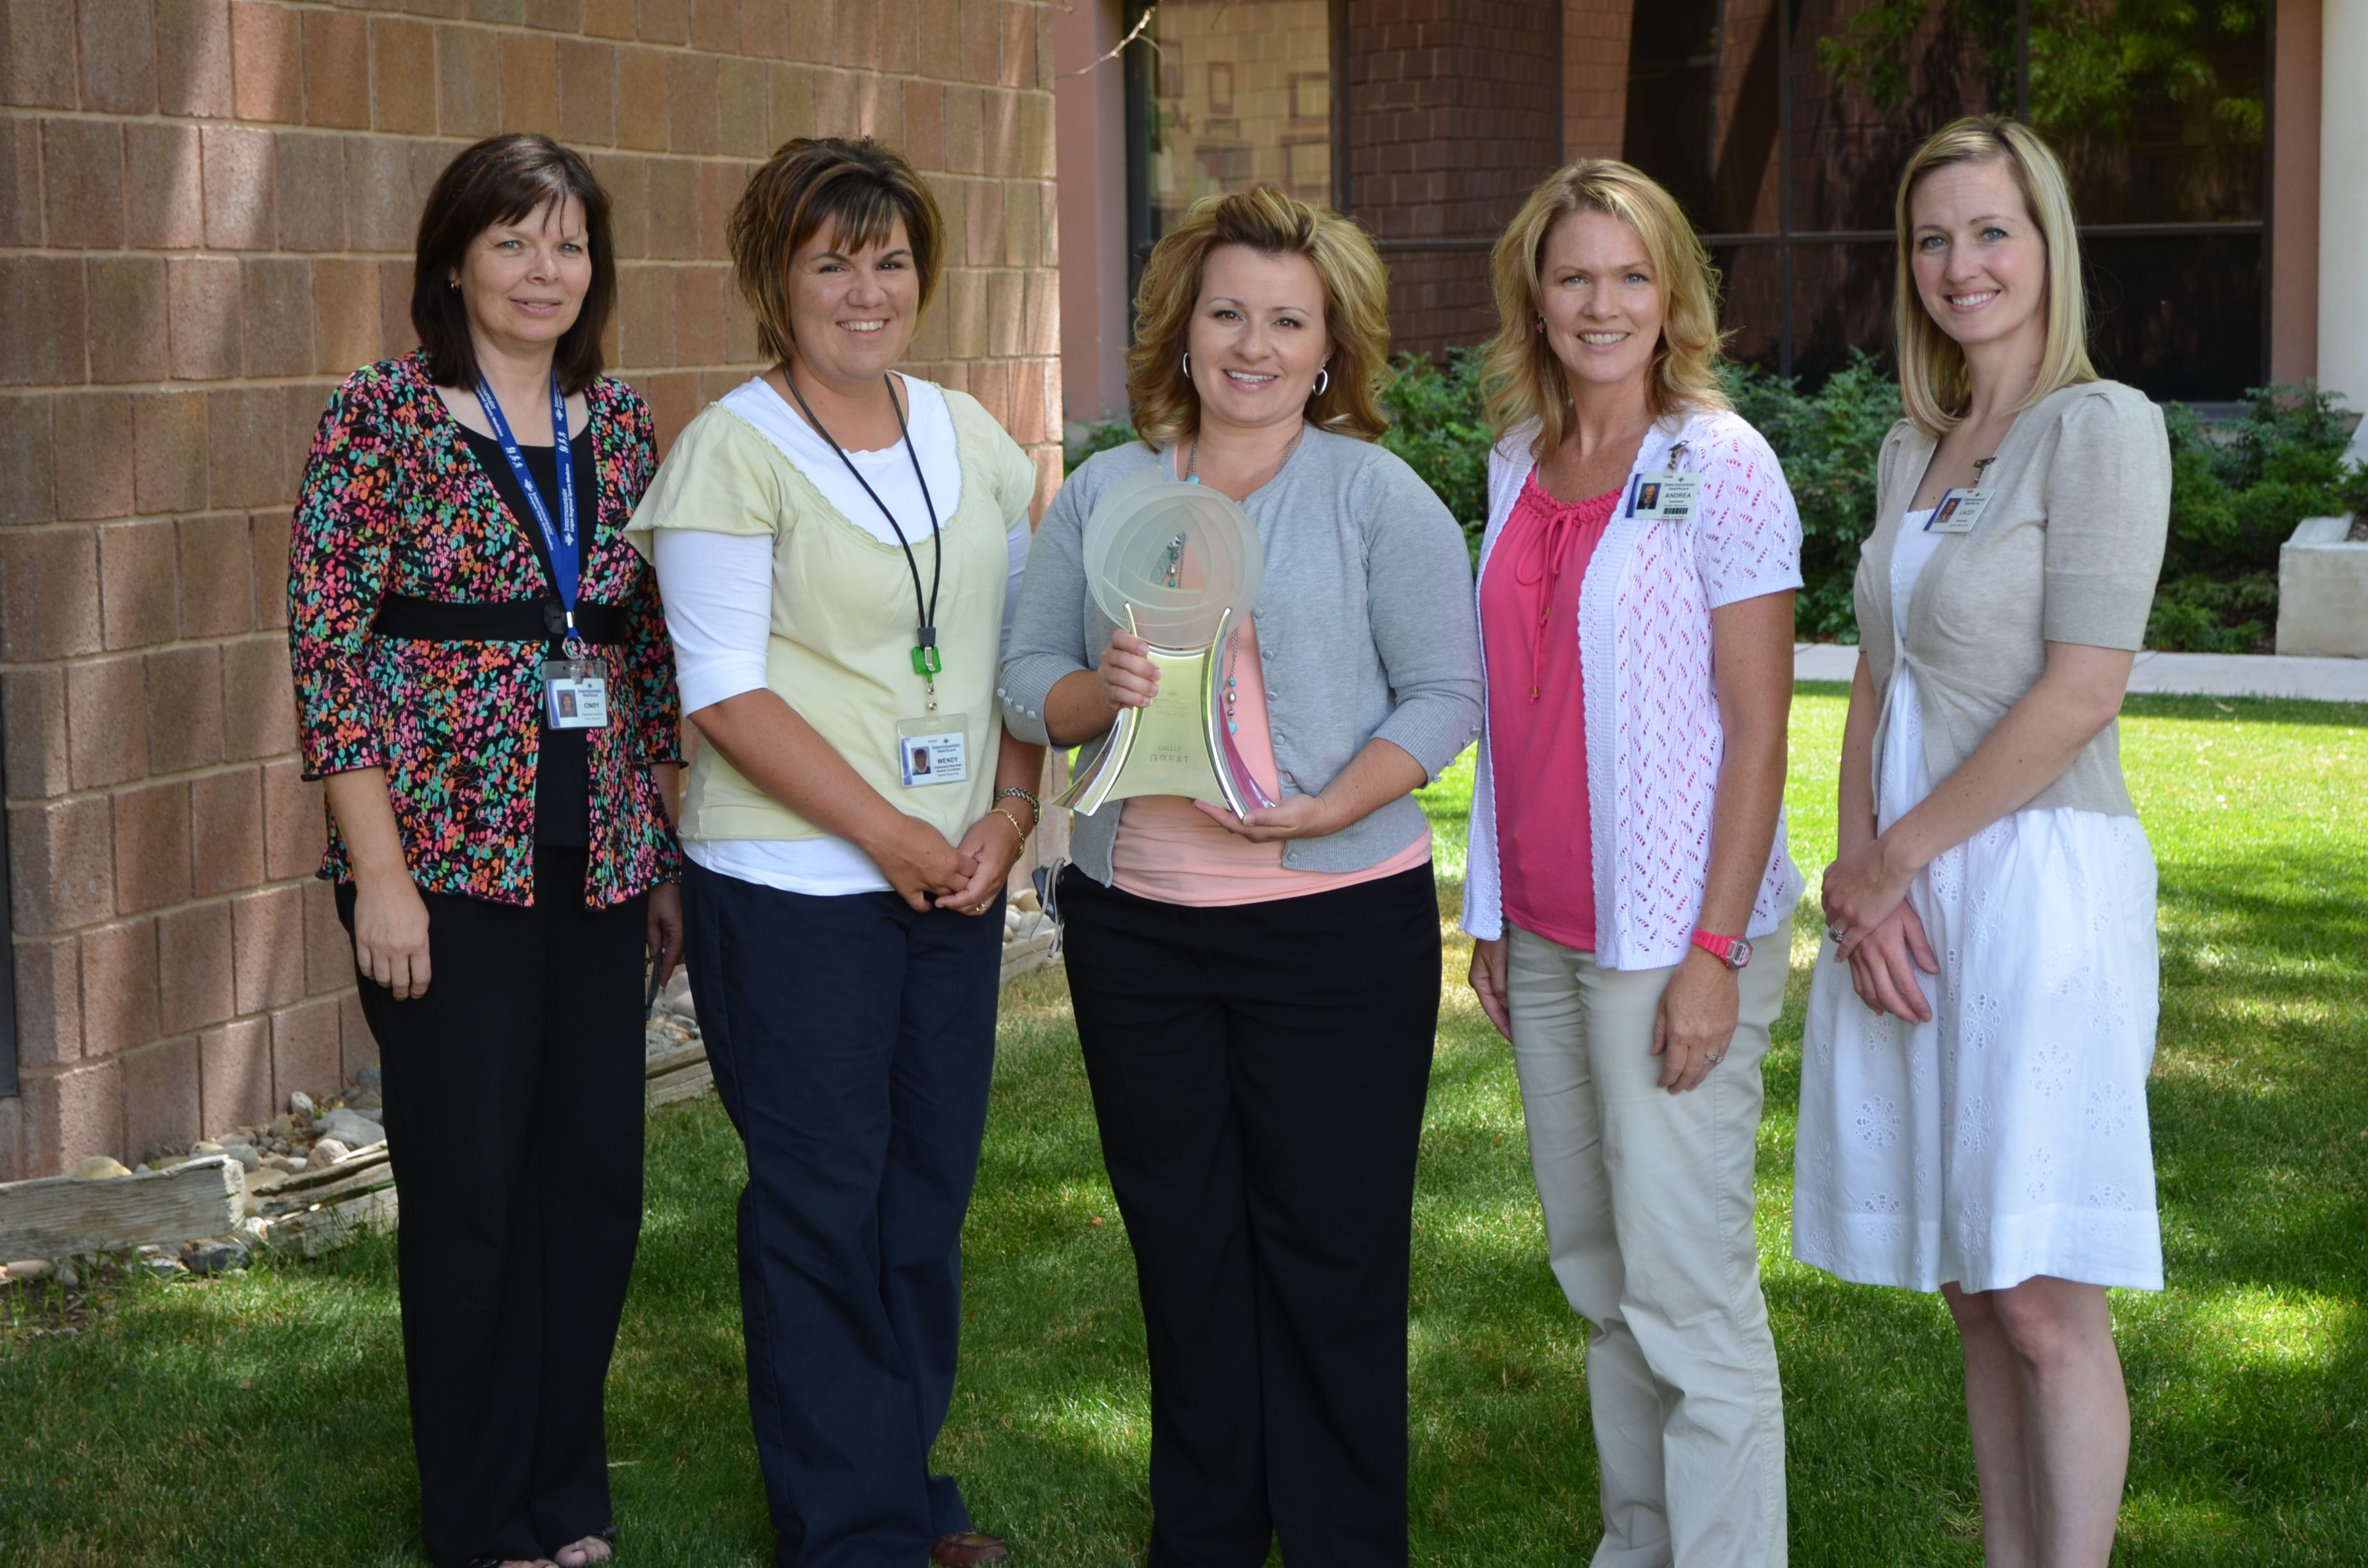 Did you know intermountain healthcare is one of 32